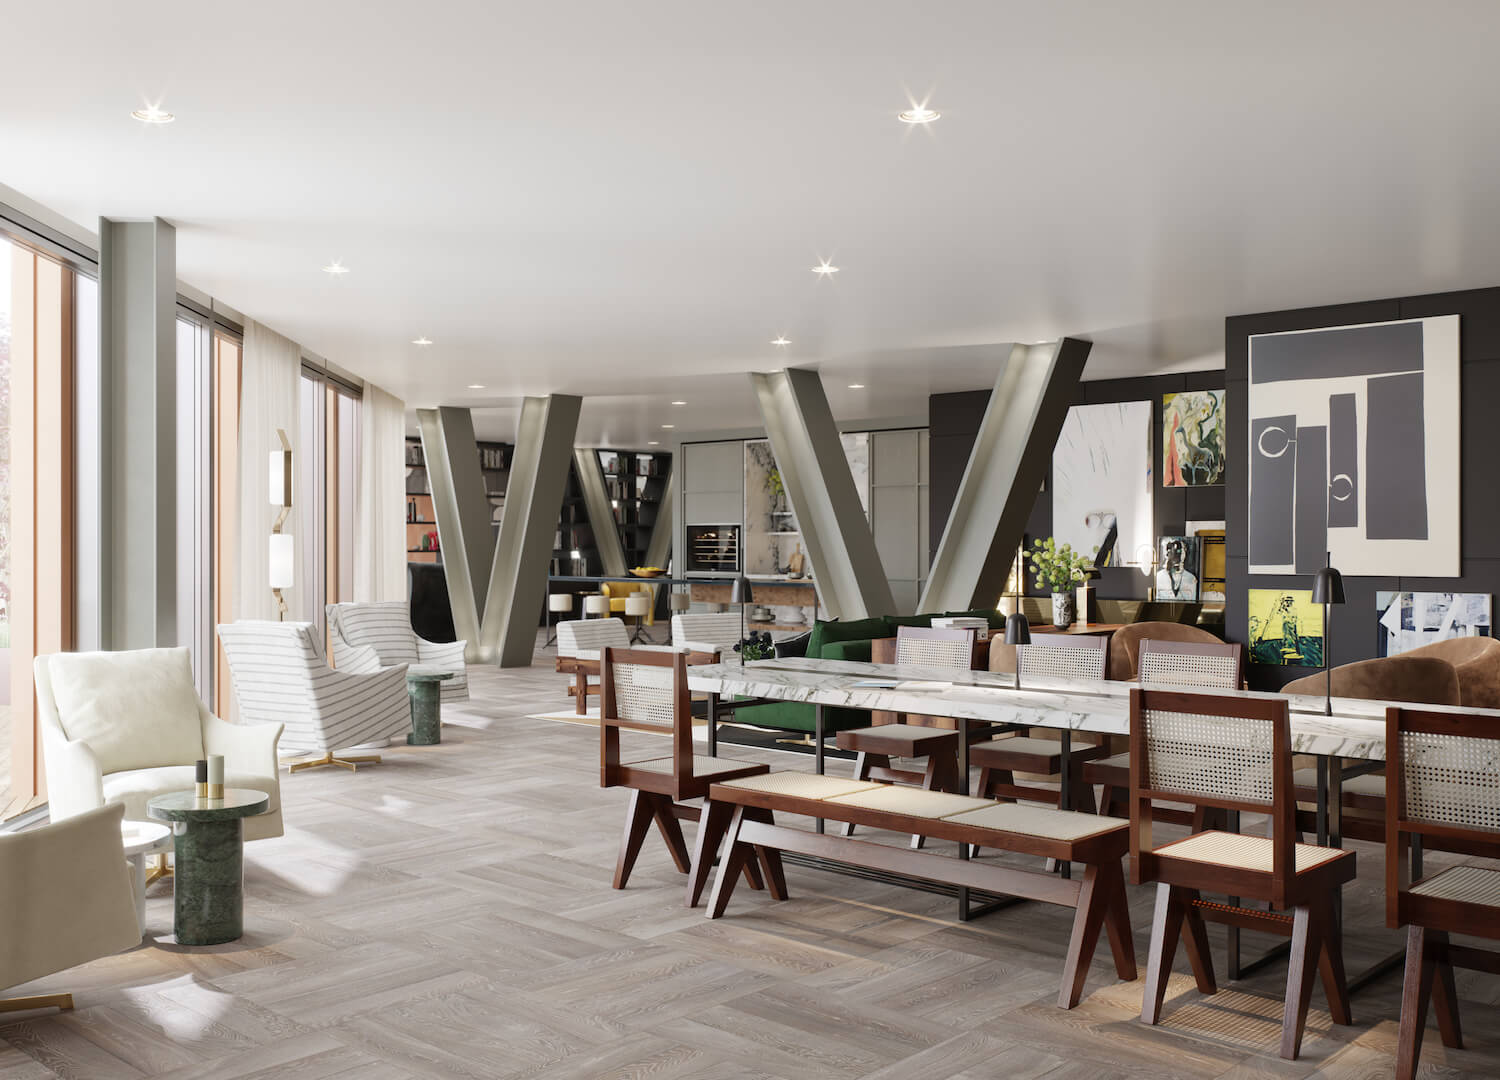 Gym at One Crown Place | Studio Ashby | est living